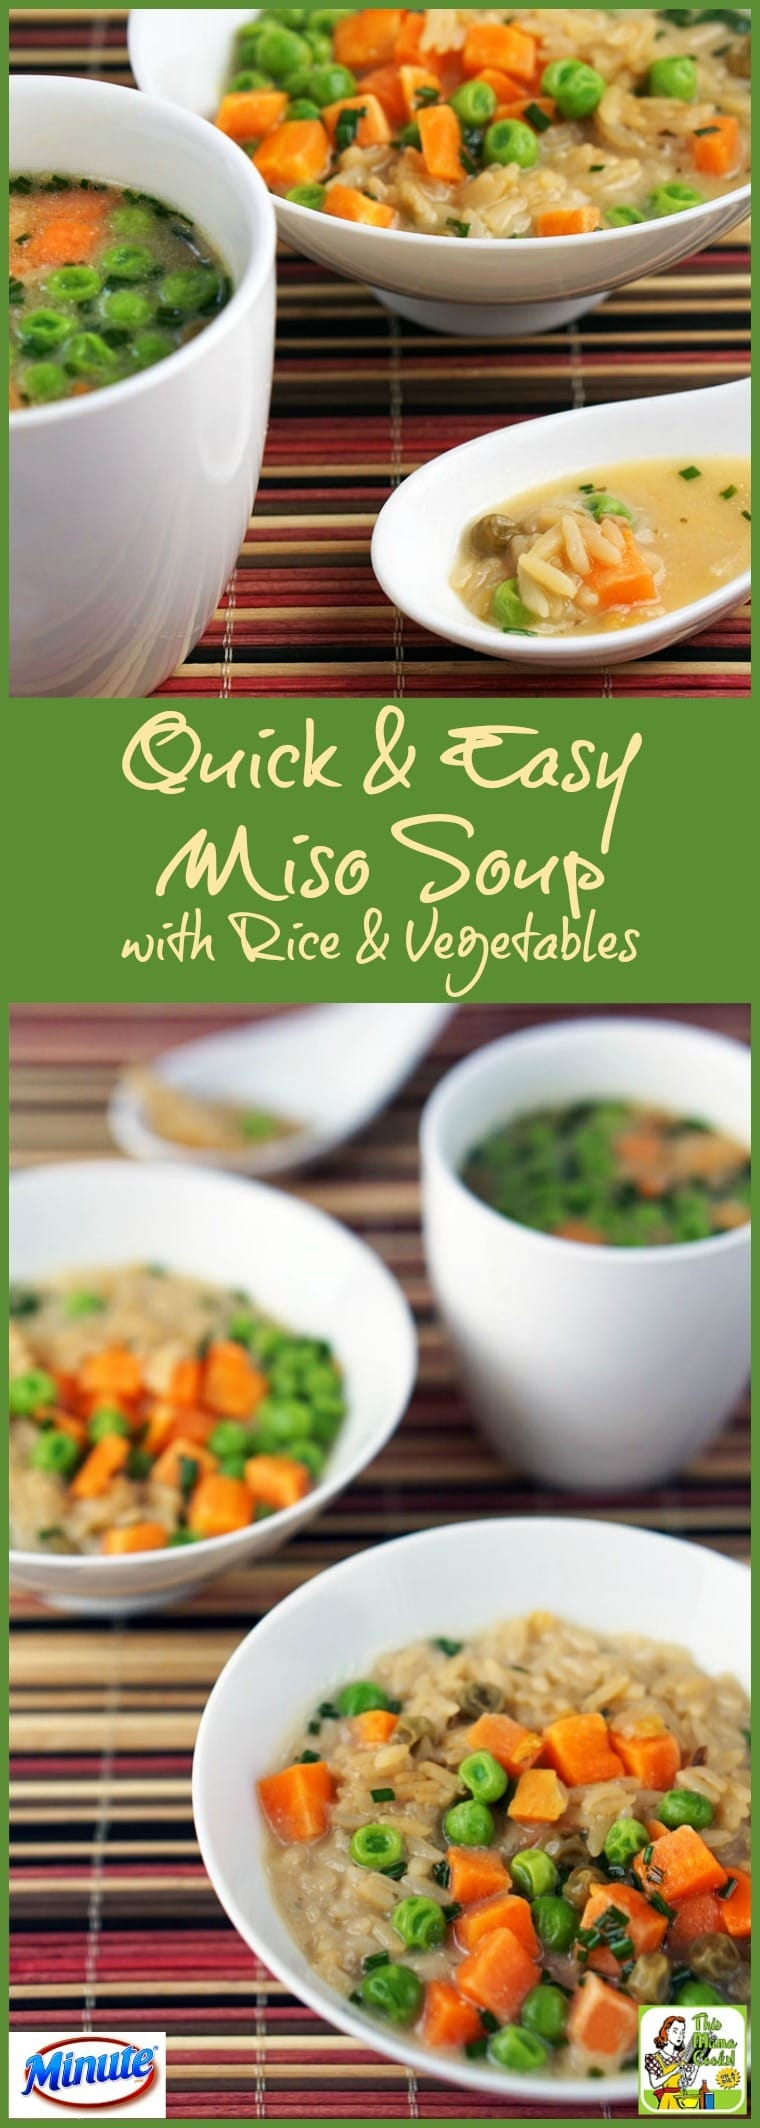 So easy to make, this Quick & Easy Miso Soup recipe made with rice and vegetables can be cooked by older kids and teens. Perfect for lunch or a wholesome snack!